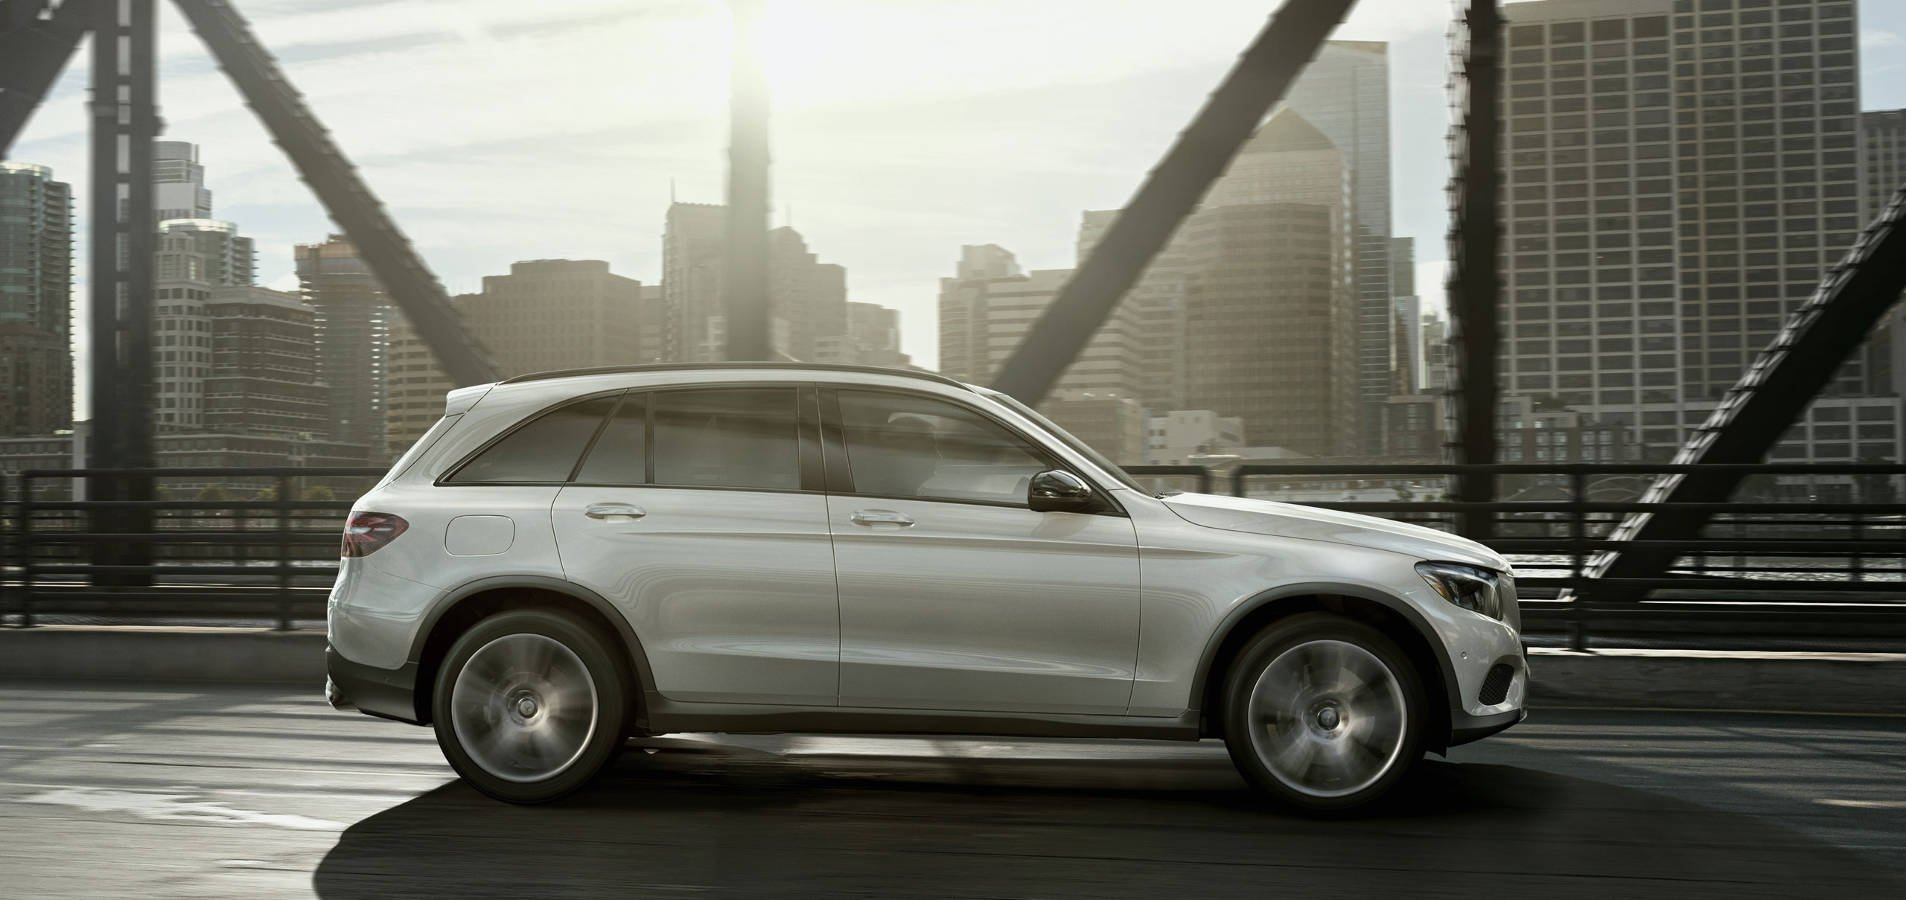 Mercedes-Benz GLC SUV in Northbrook, IL